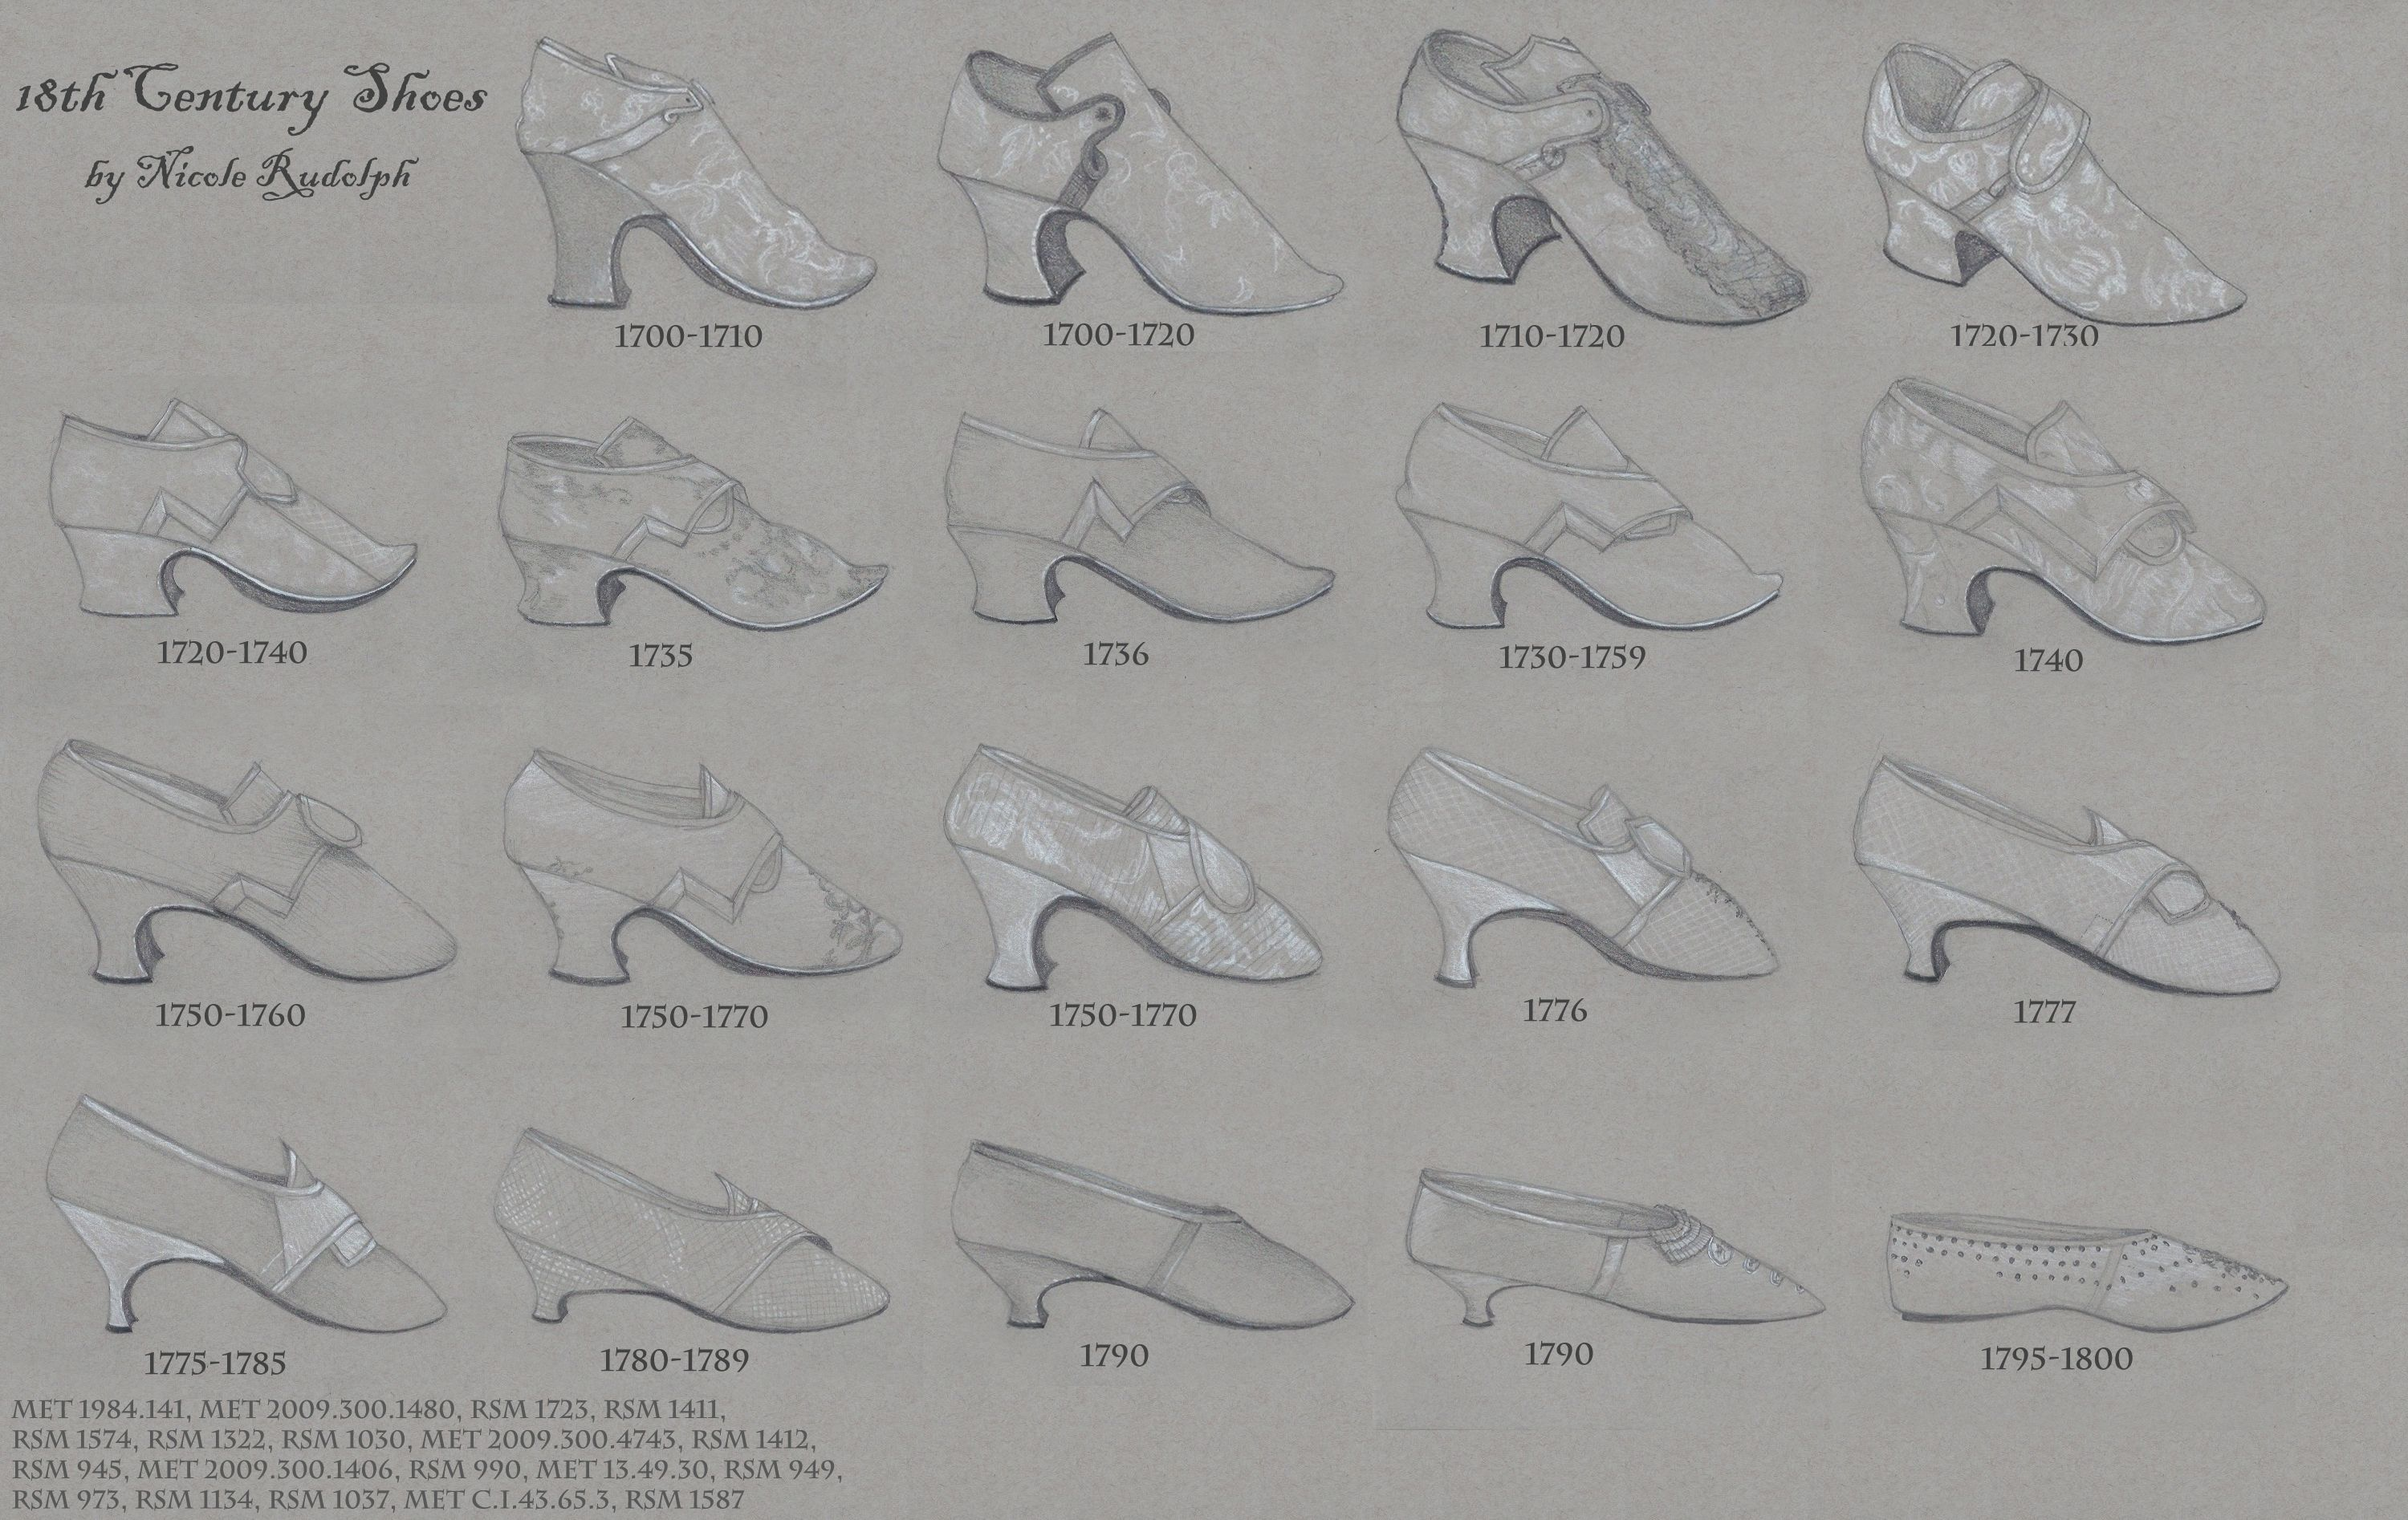 18th century timeline of shoes.